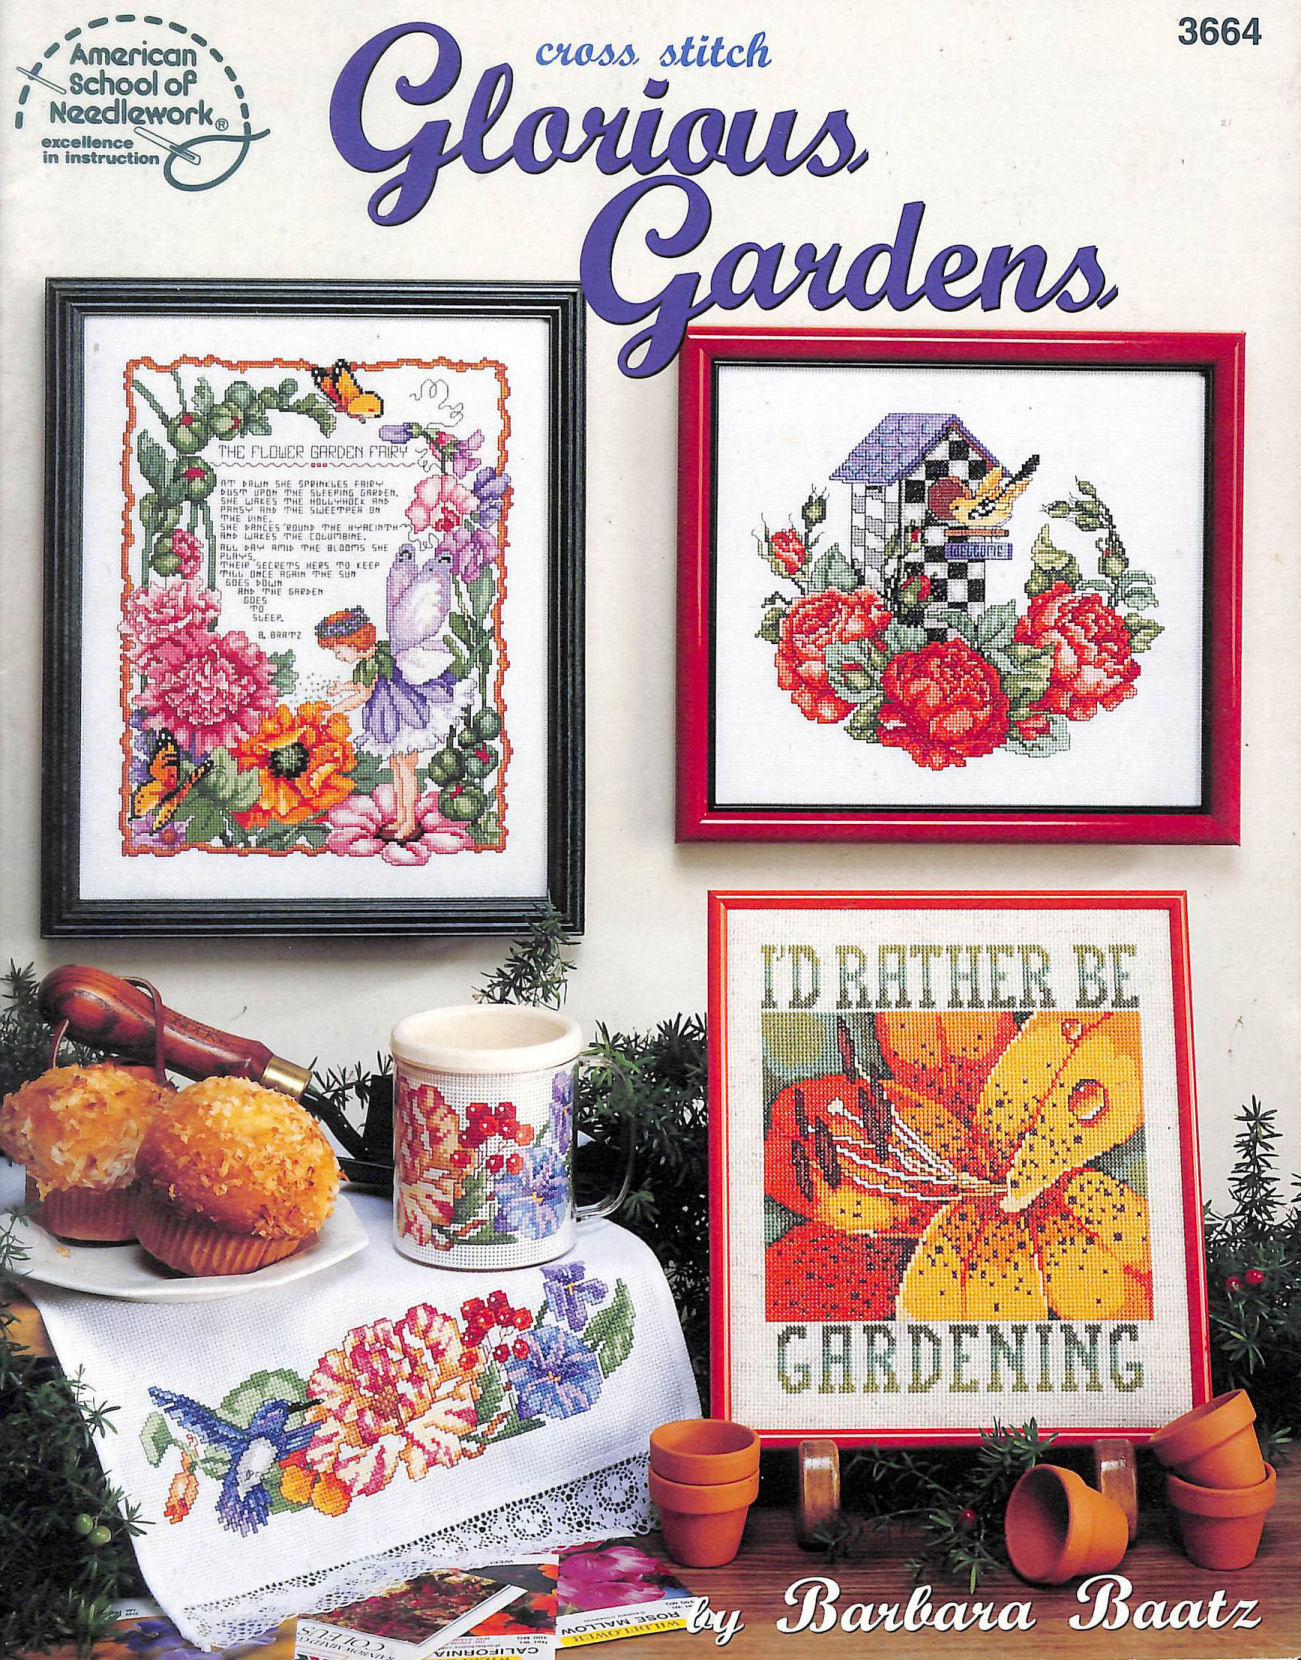 Image for Glorious Gardens - Cross Stitch - #3664 - American School of